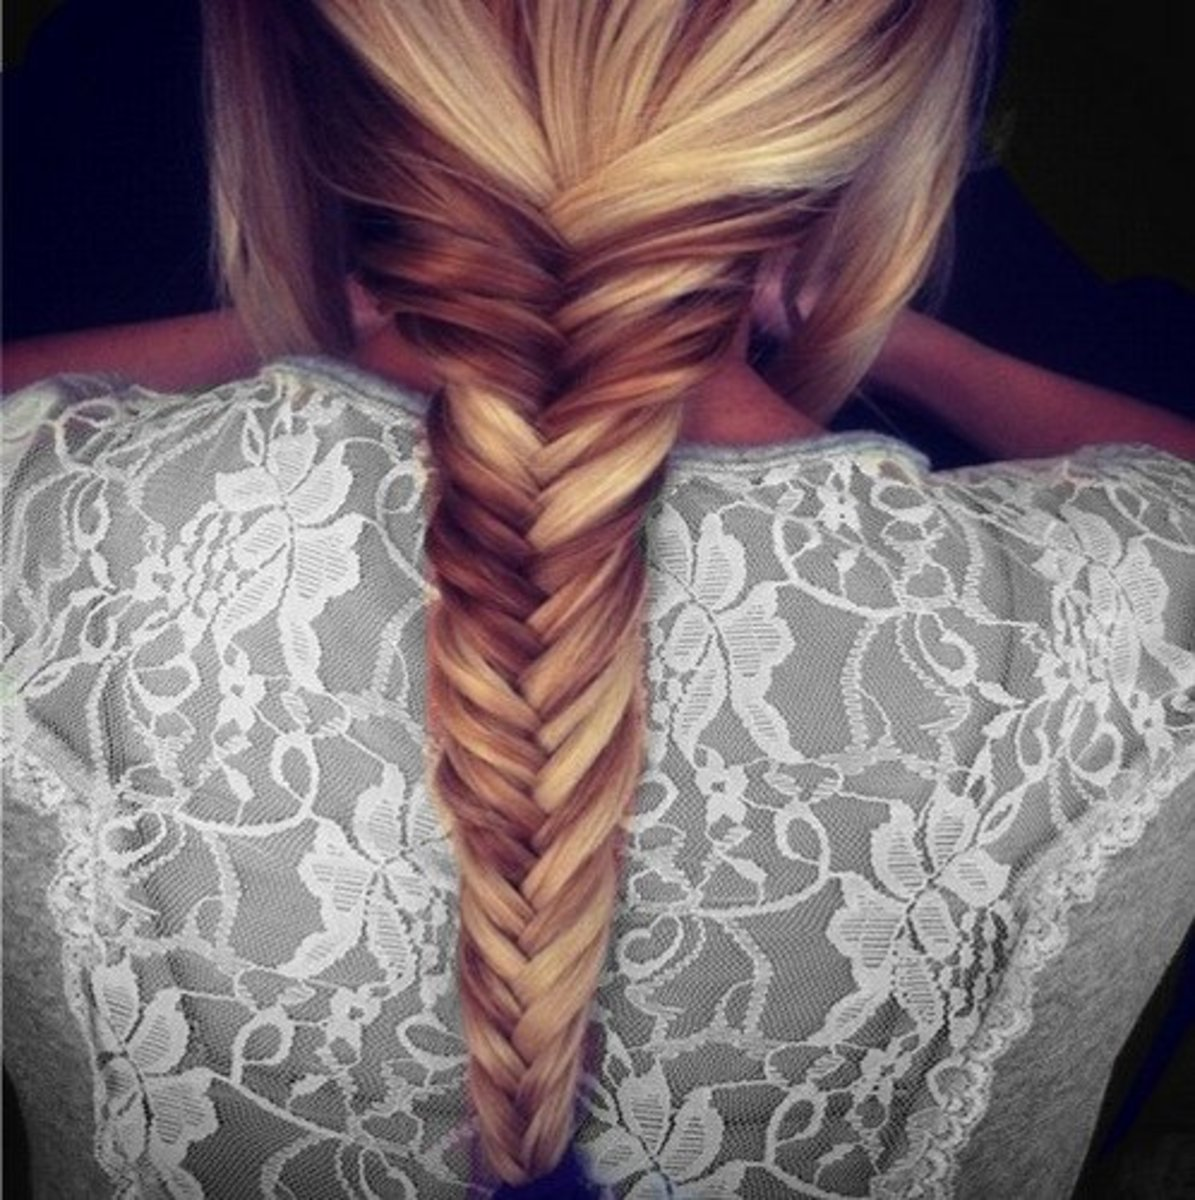 Multi-tonal hair can look beautiful and you only get that with high and low lights.